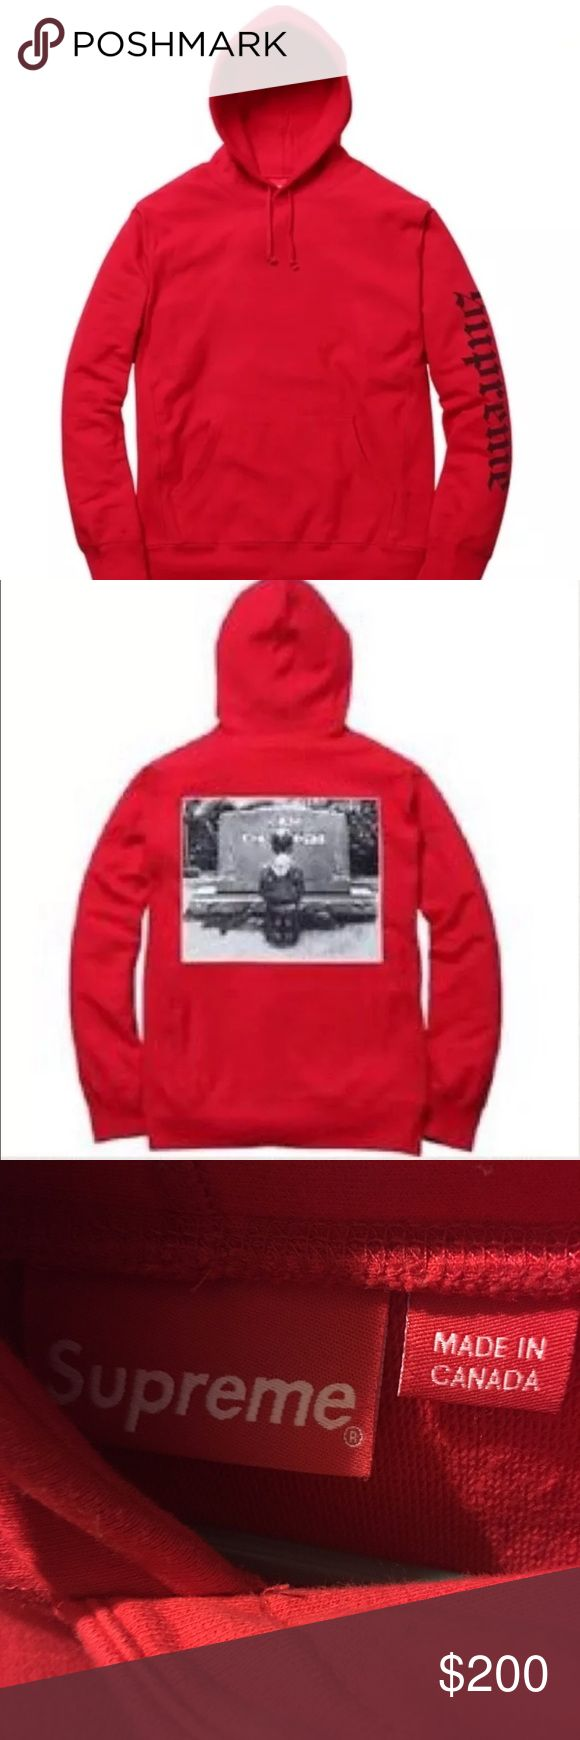 supreme hooded dead Kennedy edition men's sz md Authentic supreme men's hooded  dead Kennedy edition sz medium great condition and clean Supreme Sweaters